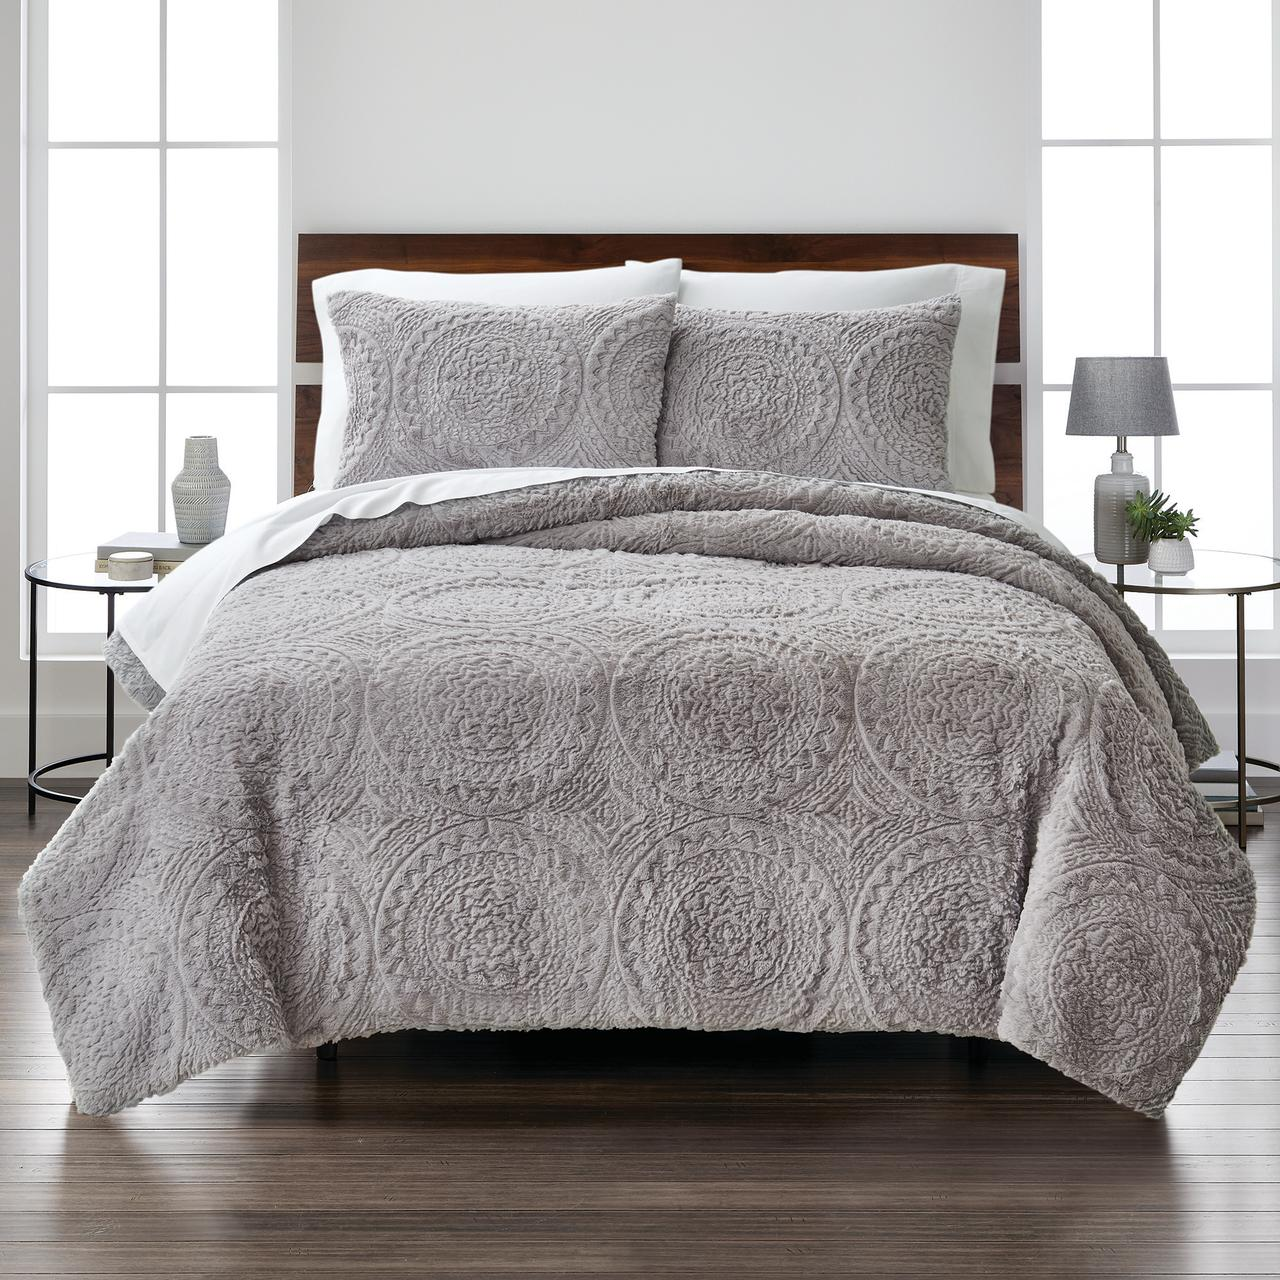 better homes gardens embroidered faux fur 3 piece comforter set king grey